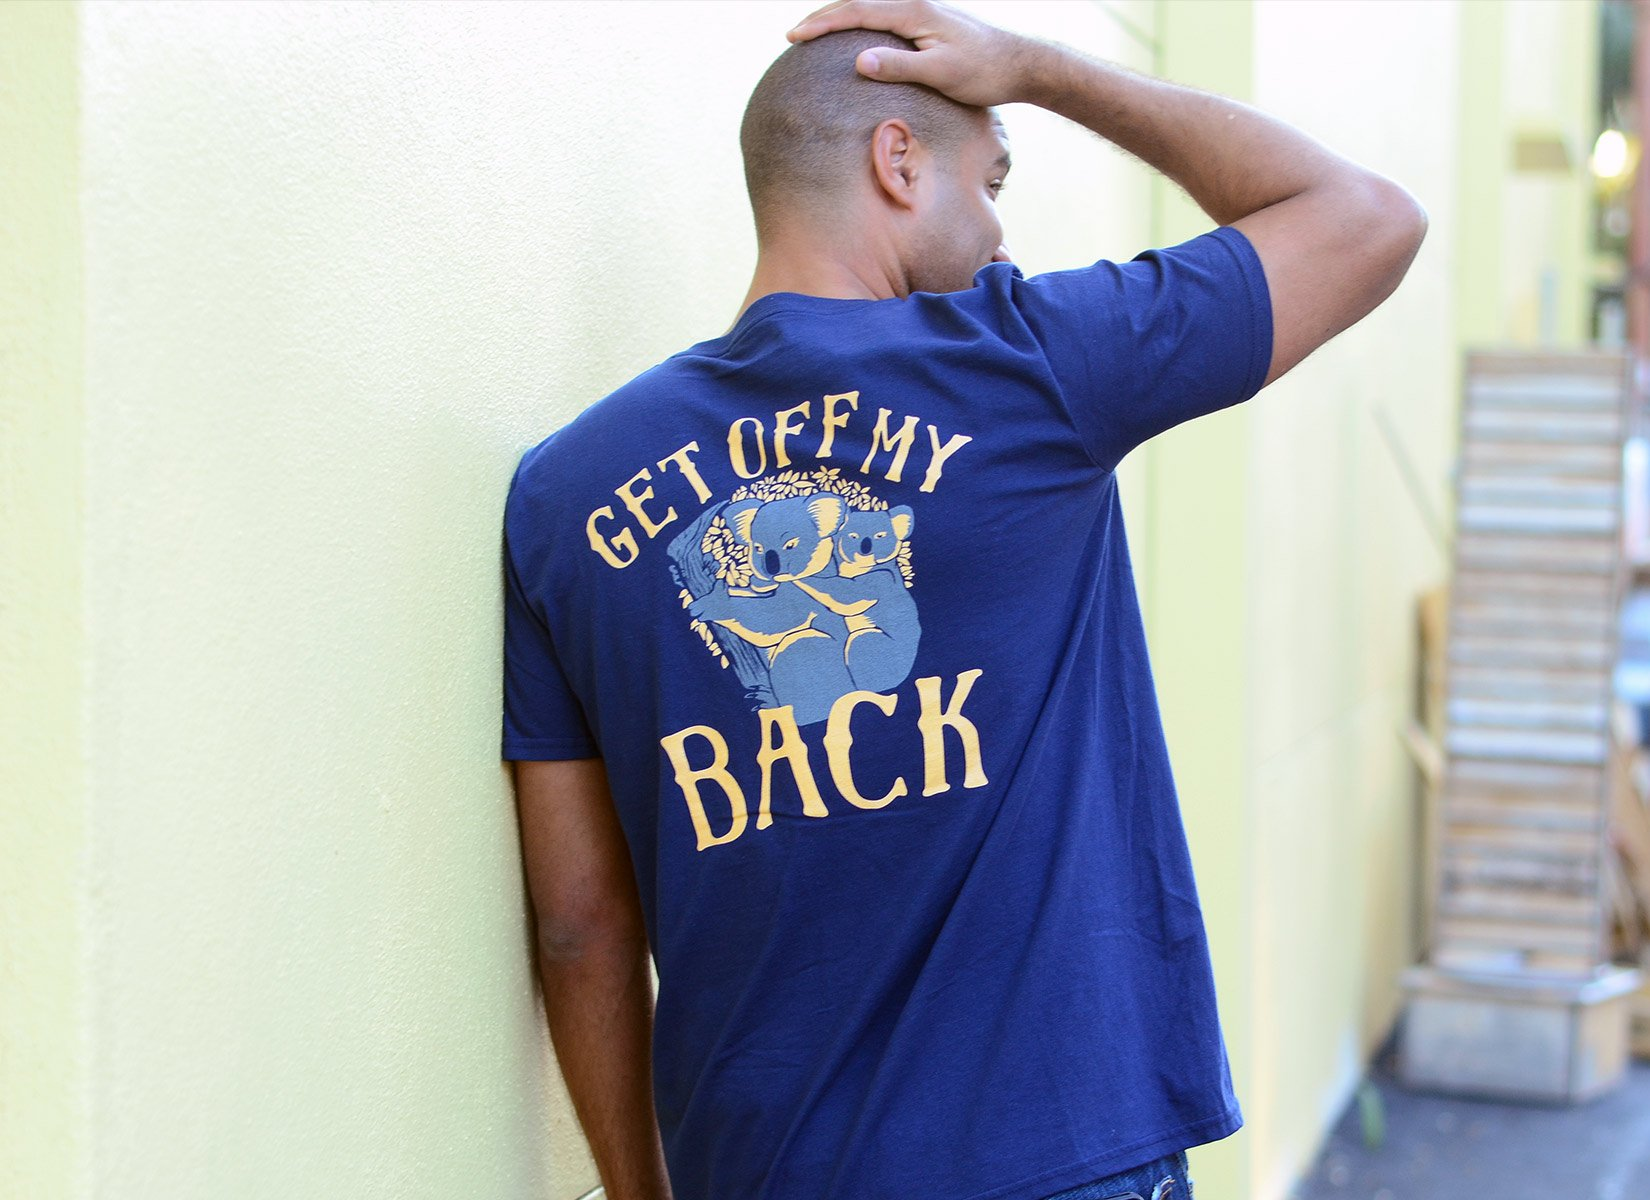 Get Off My Back on Mens T-Shirt